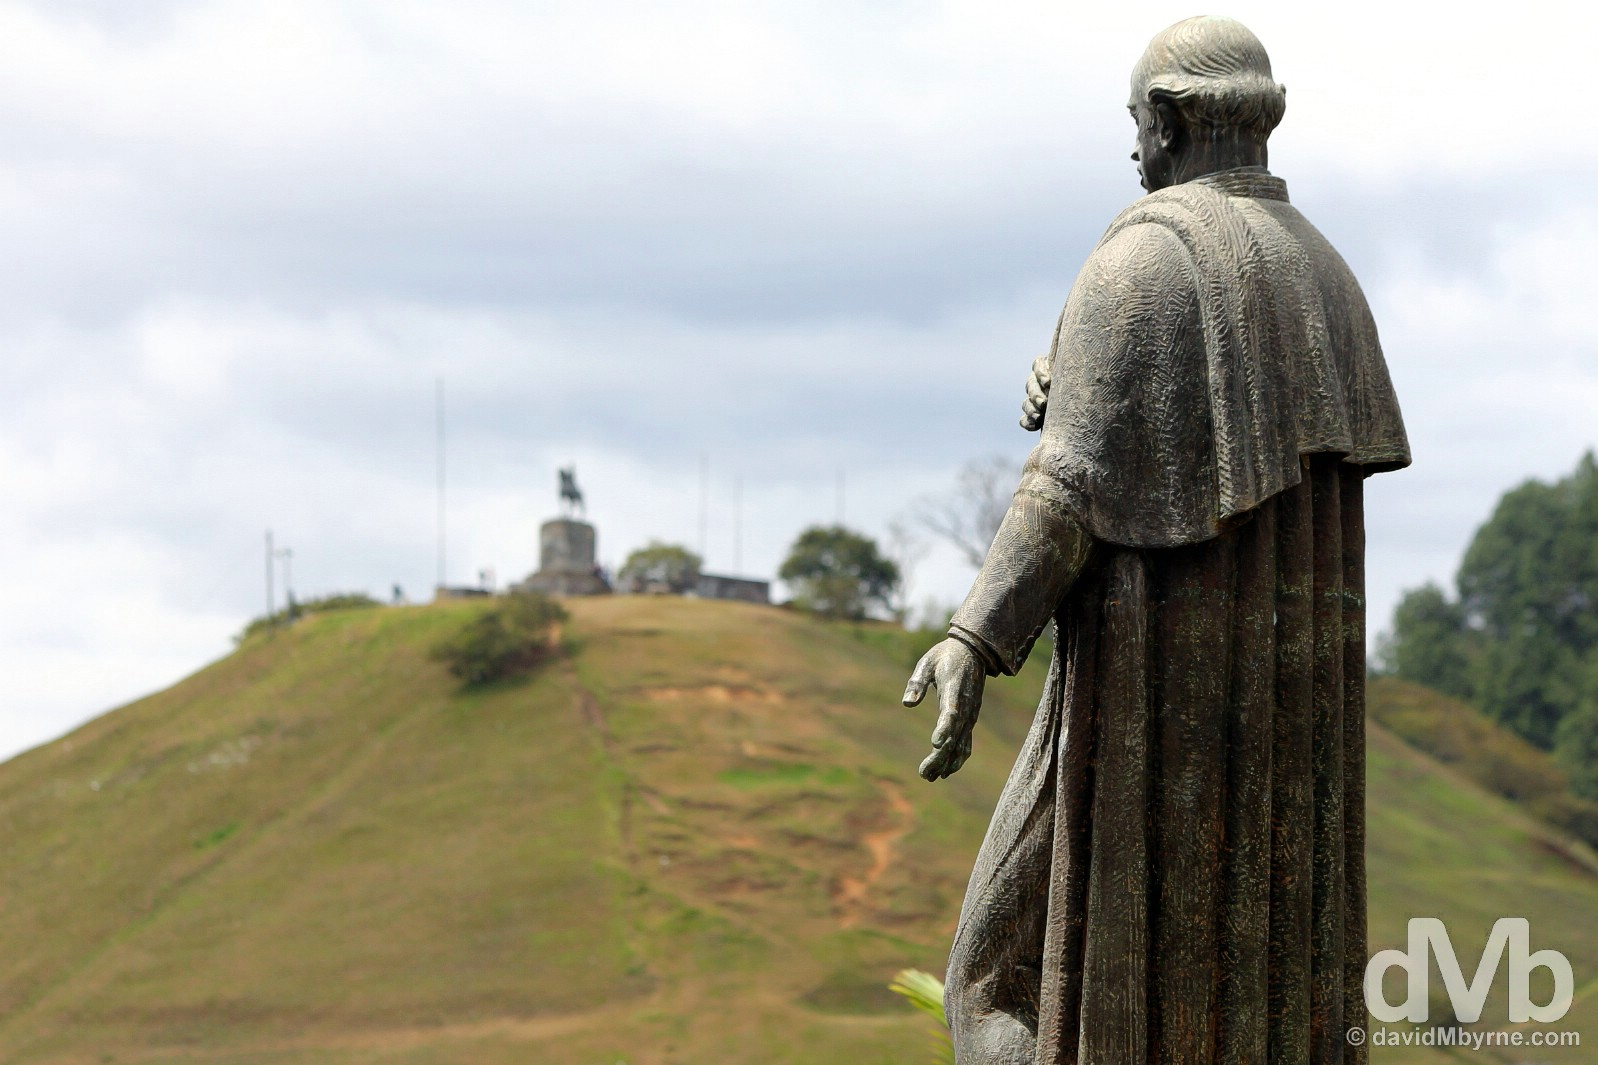 A statue of Guillermo Valencia in the grounds of the Museo Guillermo Valencia with the city lookout of El Morro de Tulcan in the distance. Popayan, Colombia. June 30, 2015.